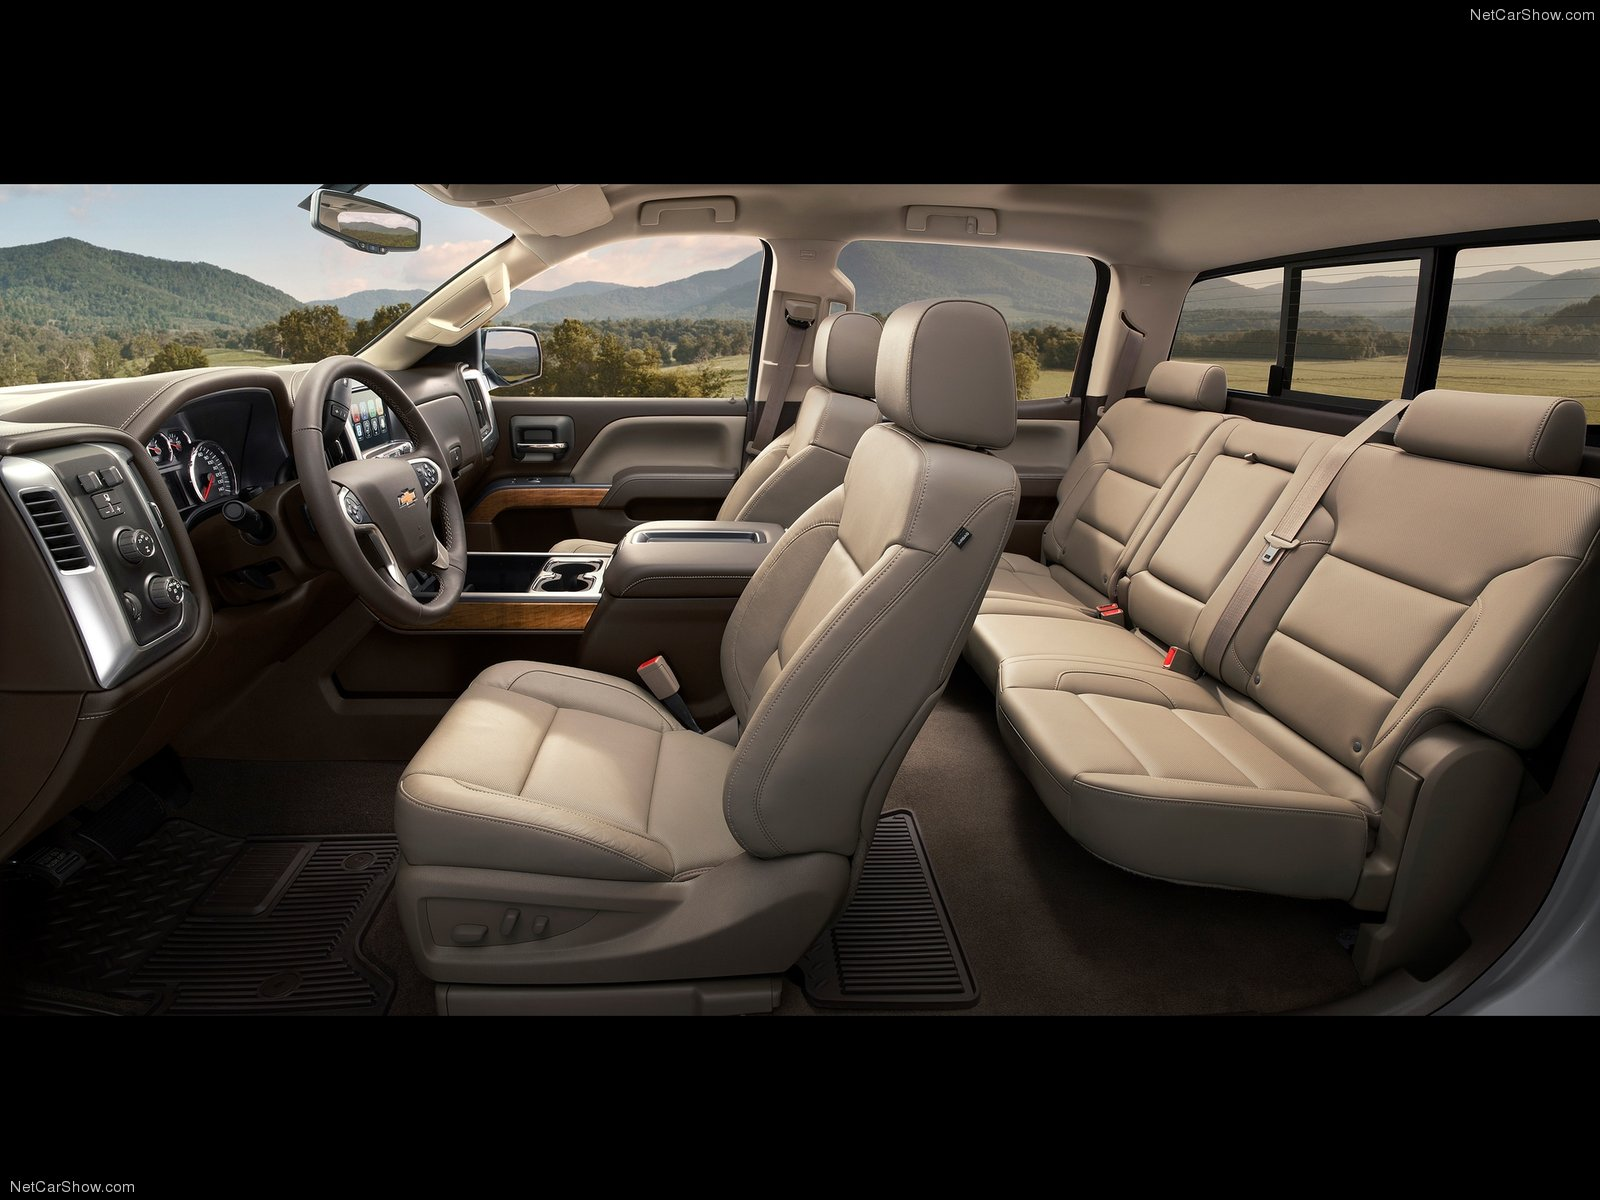 Chevrolet Silverado HD photo 108213